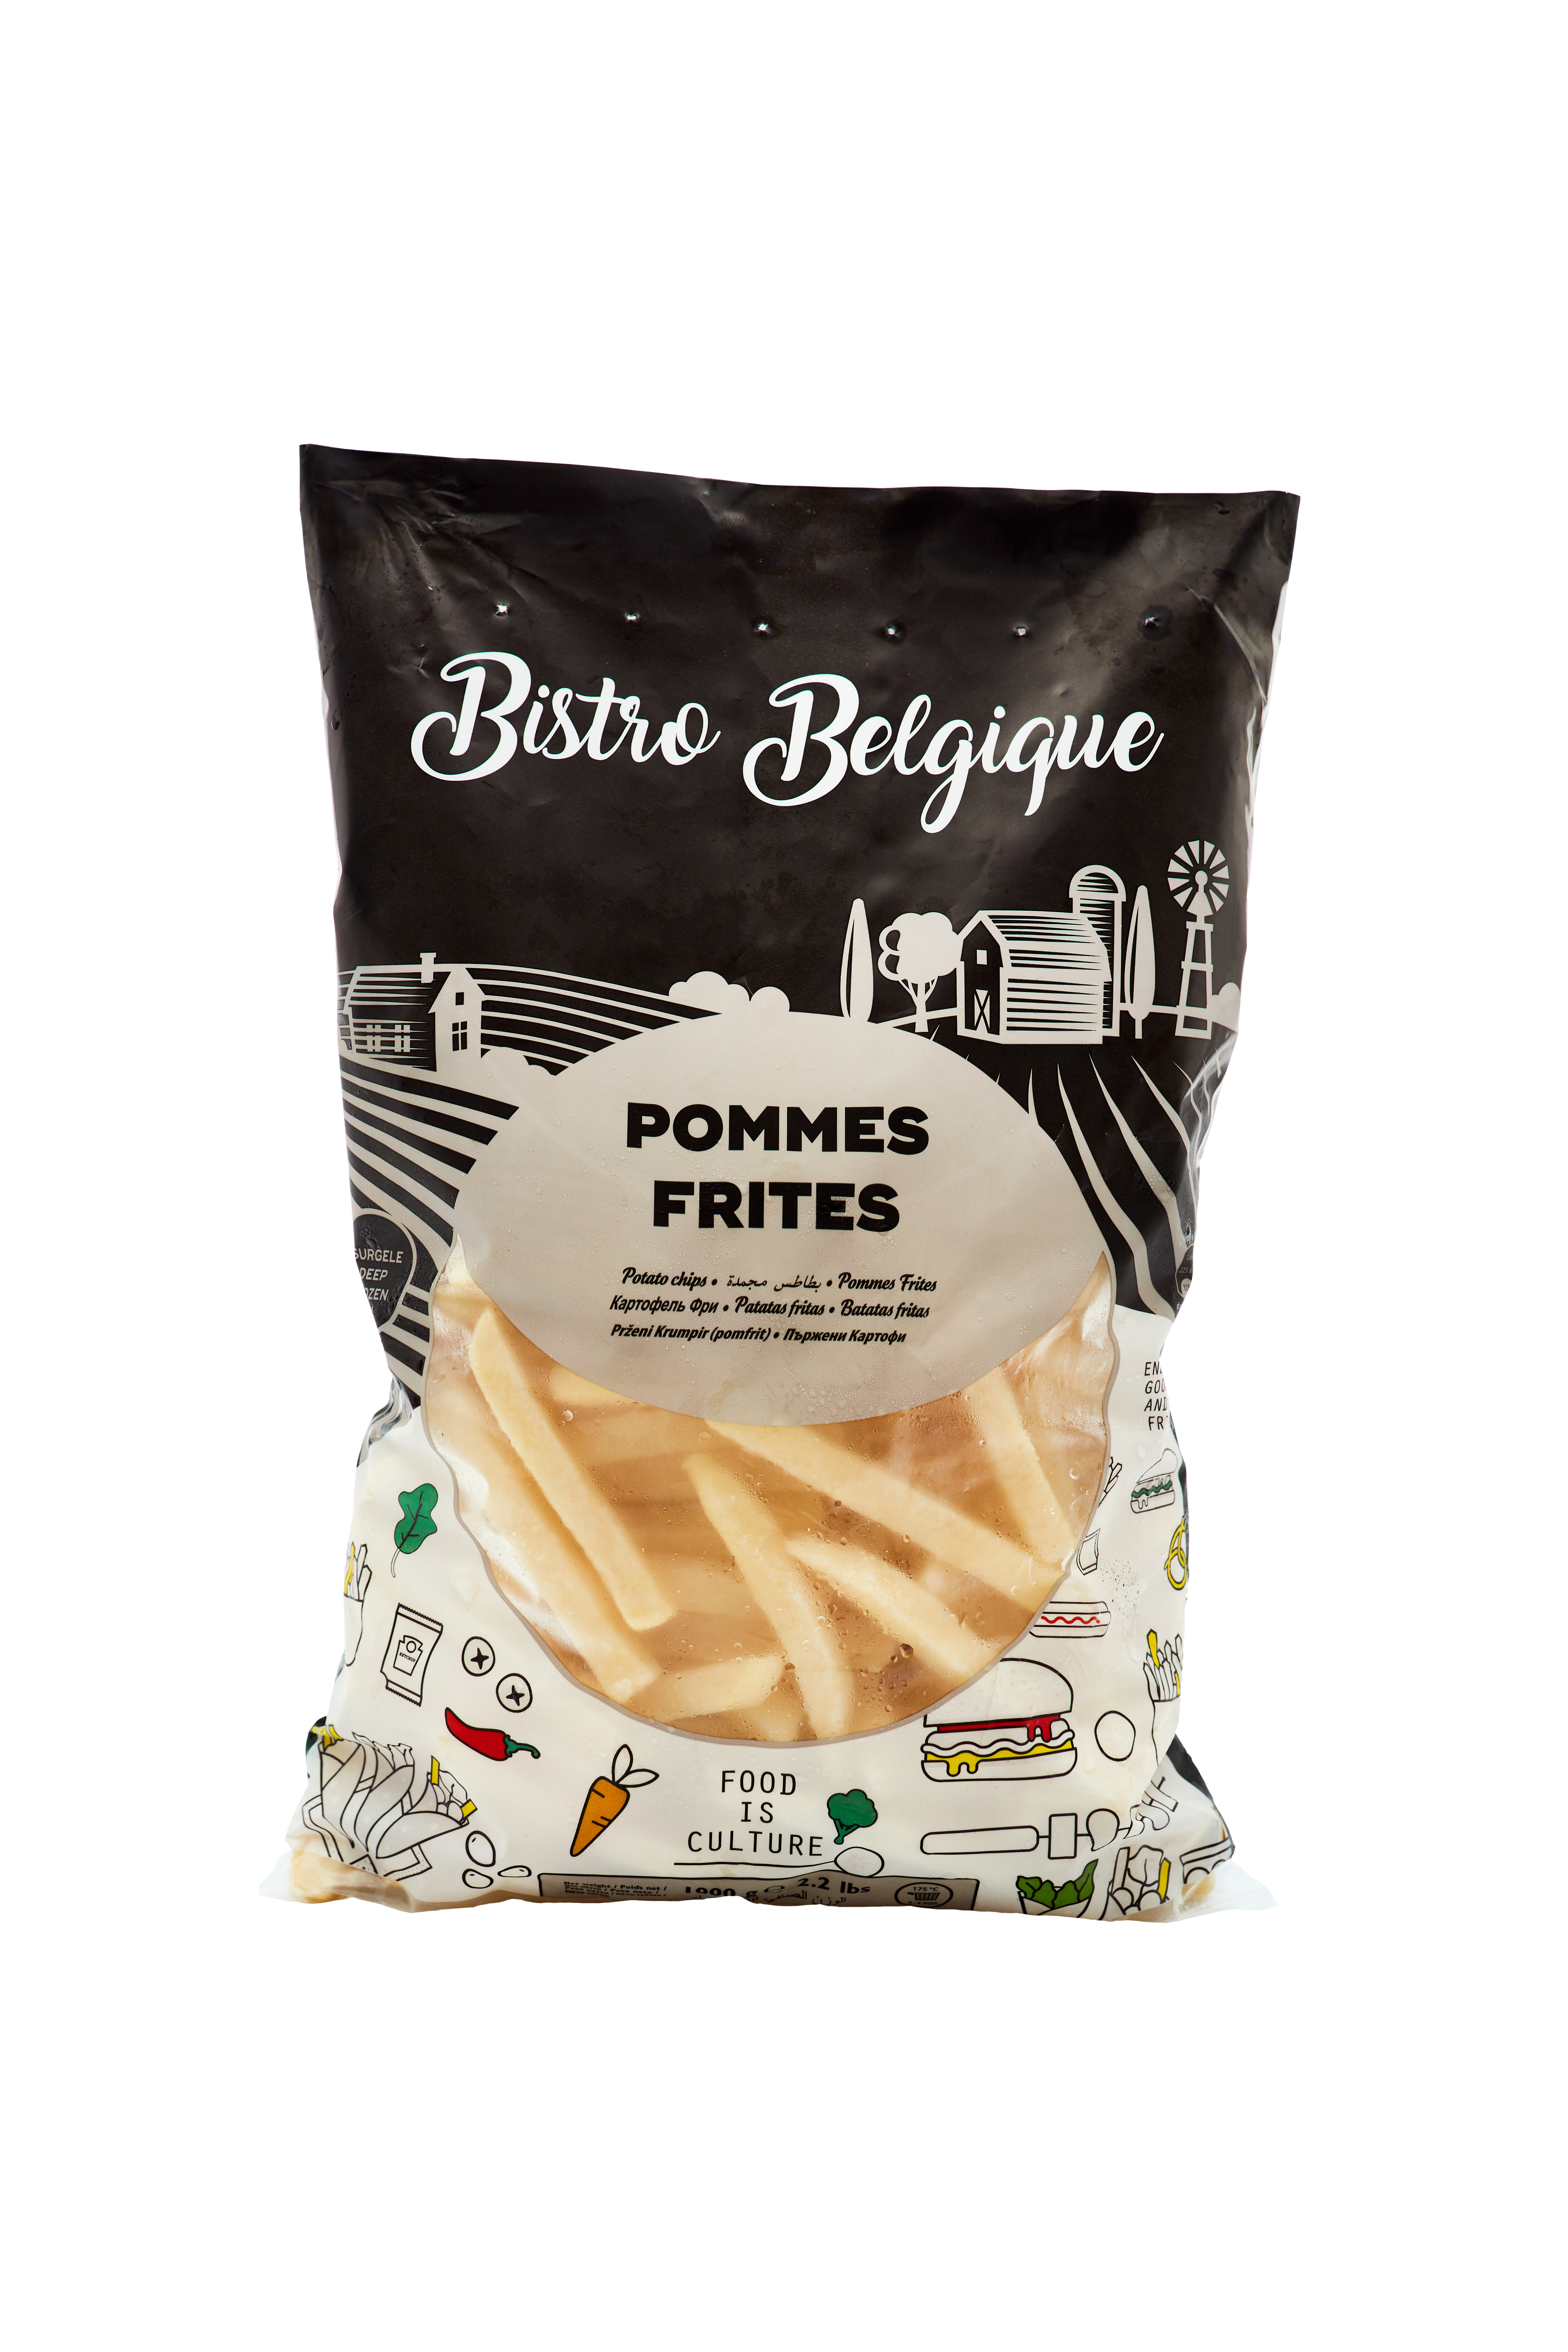 French fries 9x9mm packaging Bistro Belgique brand